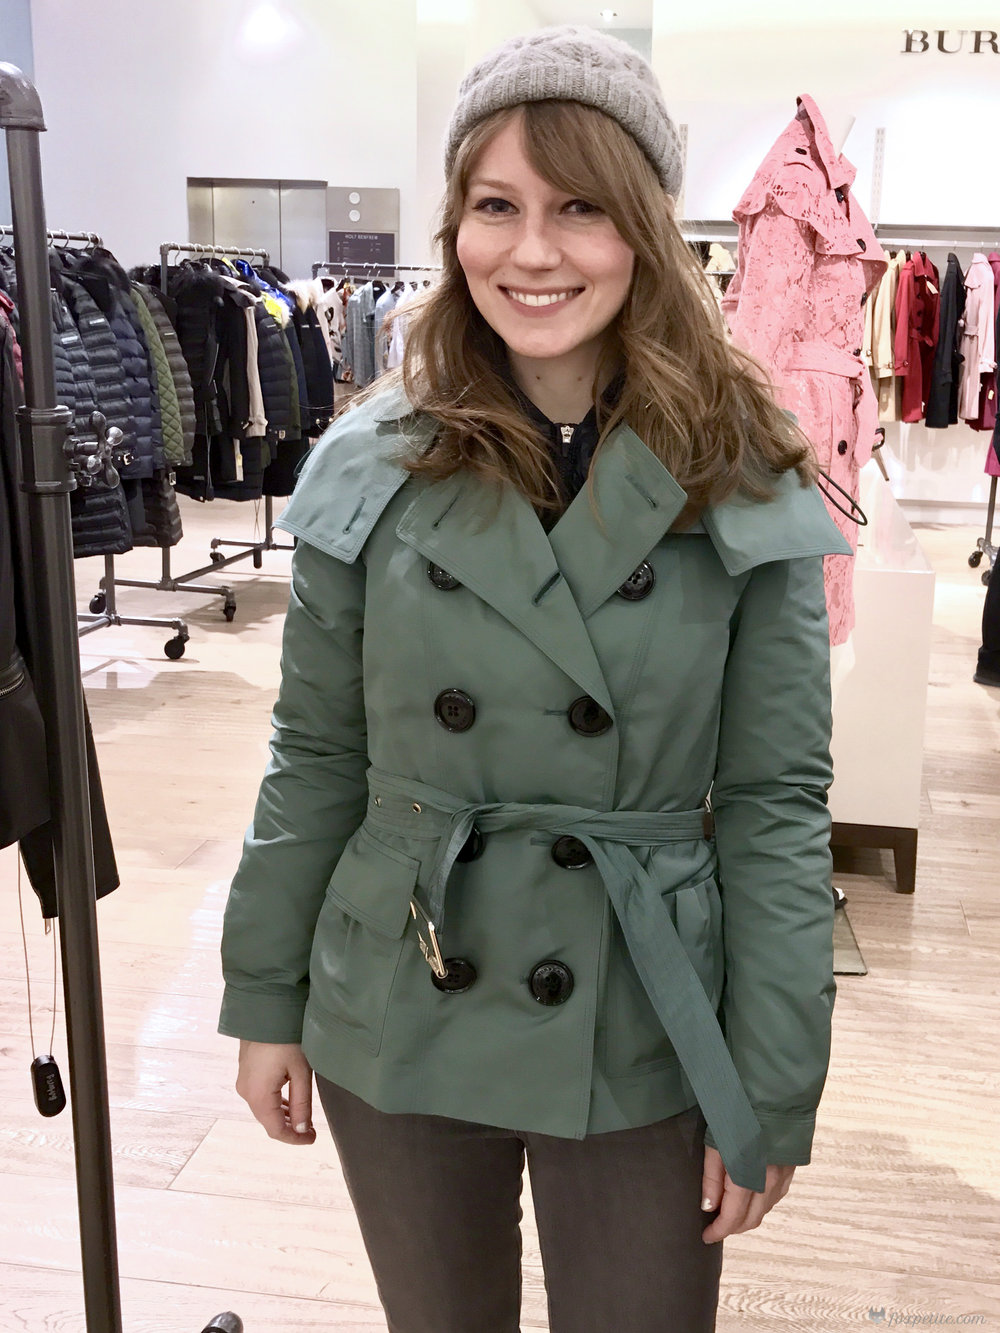 Burberry Risebrooke Showerproof Taffeta Trench Jacket in eucalyptus green, USA size 2 ( here ), hat by Rella ( similar )